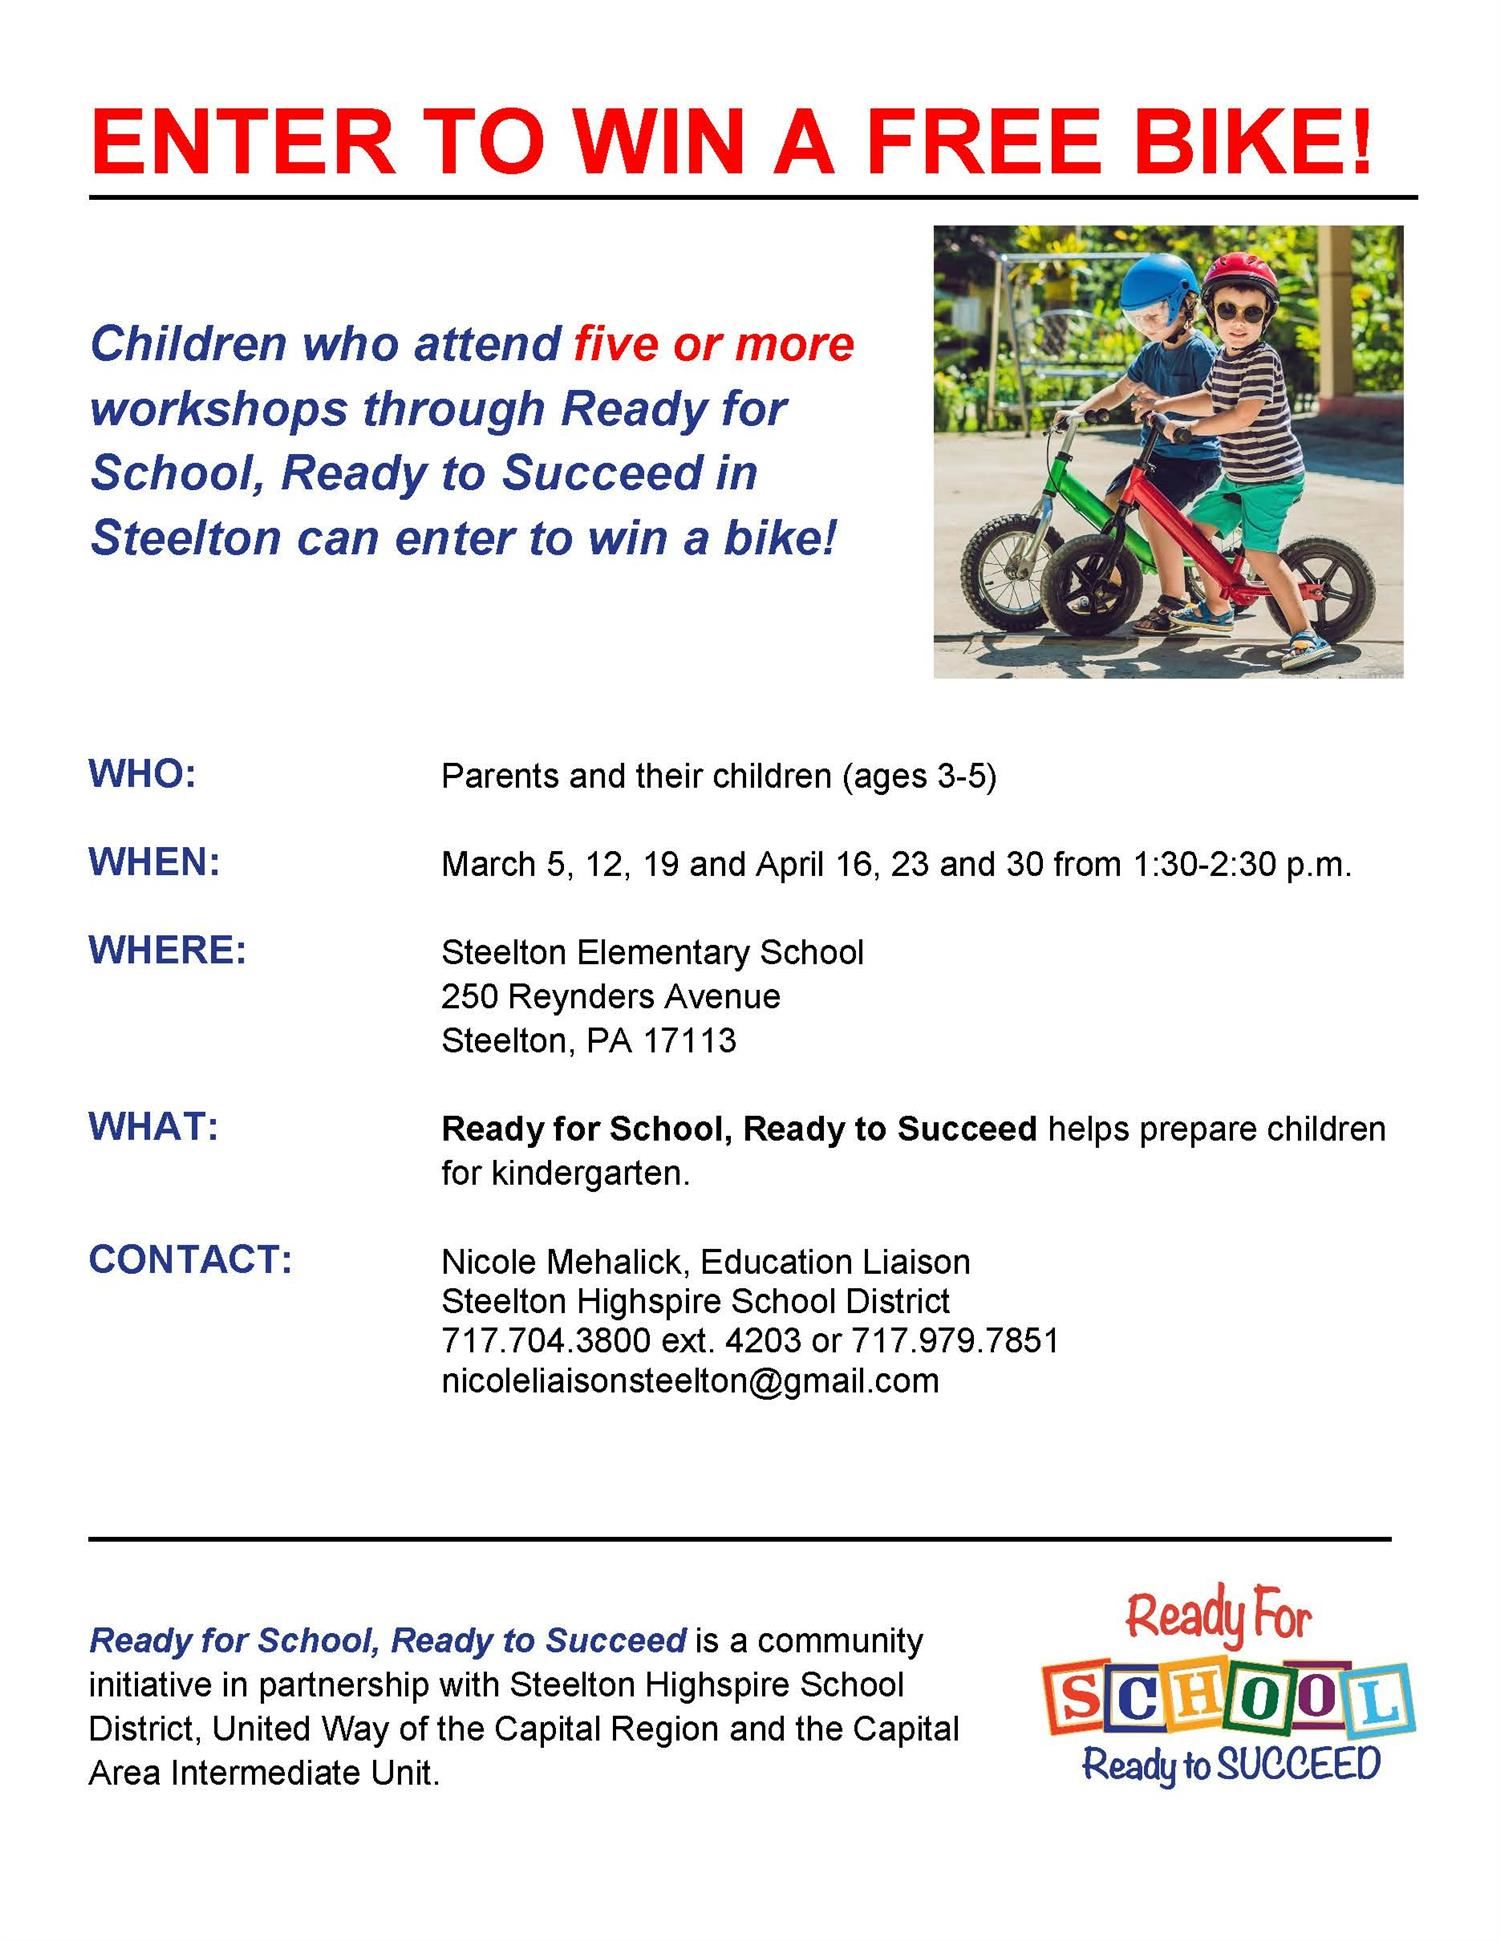 Ready for School, Ready to Succeed- Children who attend five or more workshops through Ready for School, Ready to Succeed in Steelton-Highspire can enter to win a bike!